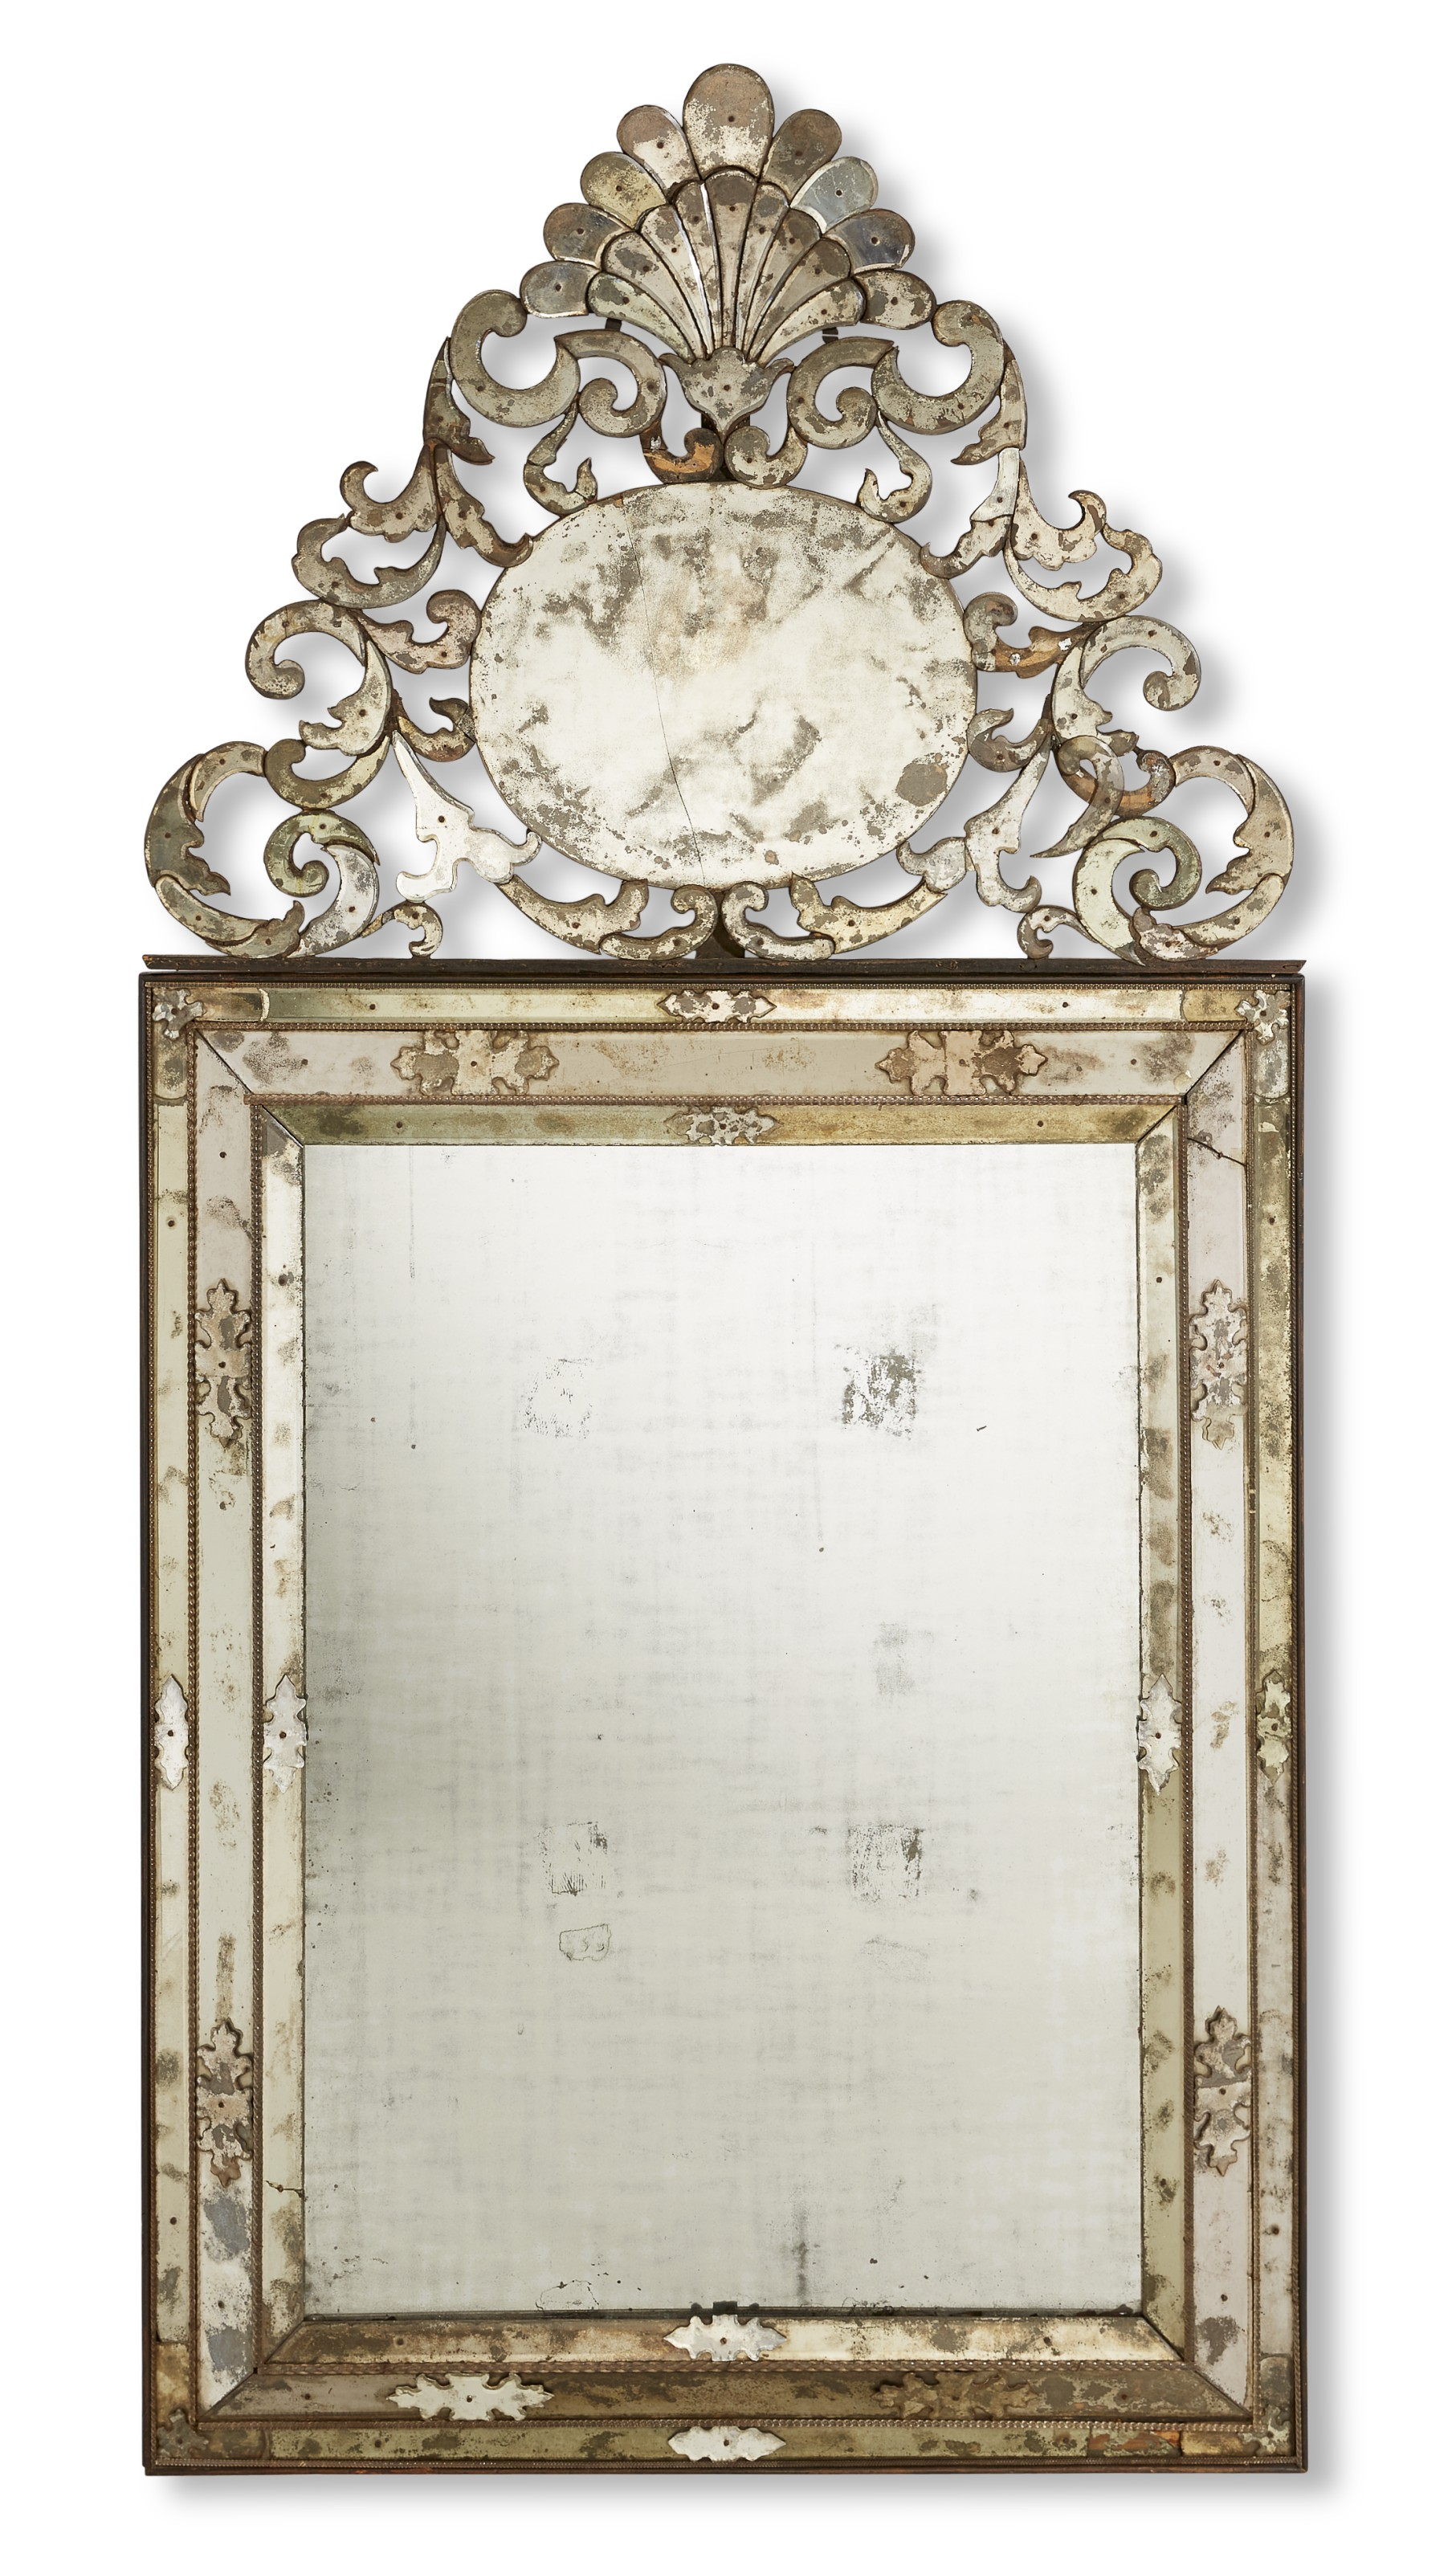 A north Italian clear glass mirror, probably Venice, c. 1725. 100.5  in (255.5  cm) high, 49  in (124.5  cm) wide. Estimate $20,000-30,000. Offered in The Collector English & European Furniture, Ceramics, Silver & Works of Art on 5-19 October 2021 at Christie's Online